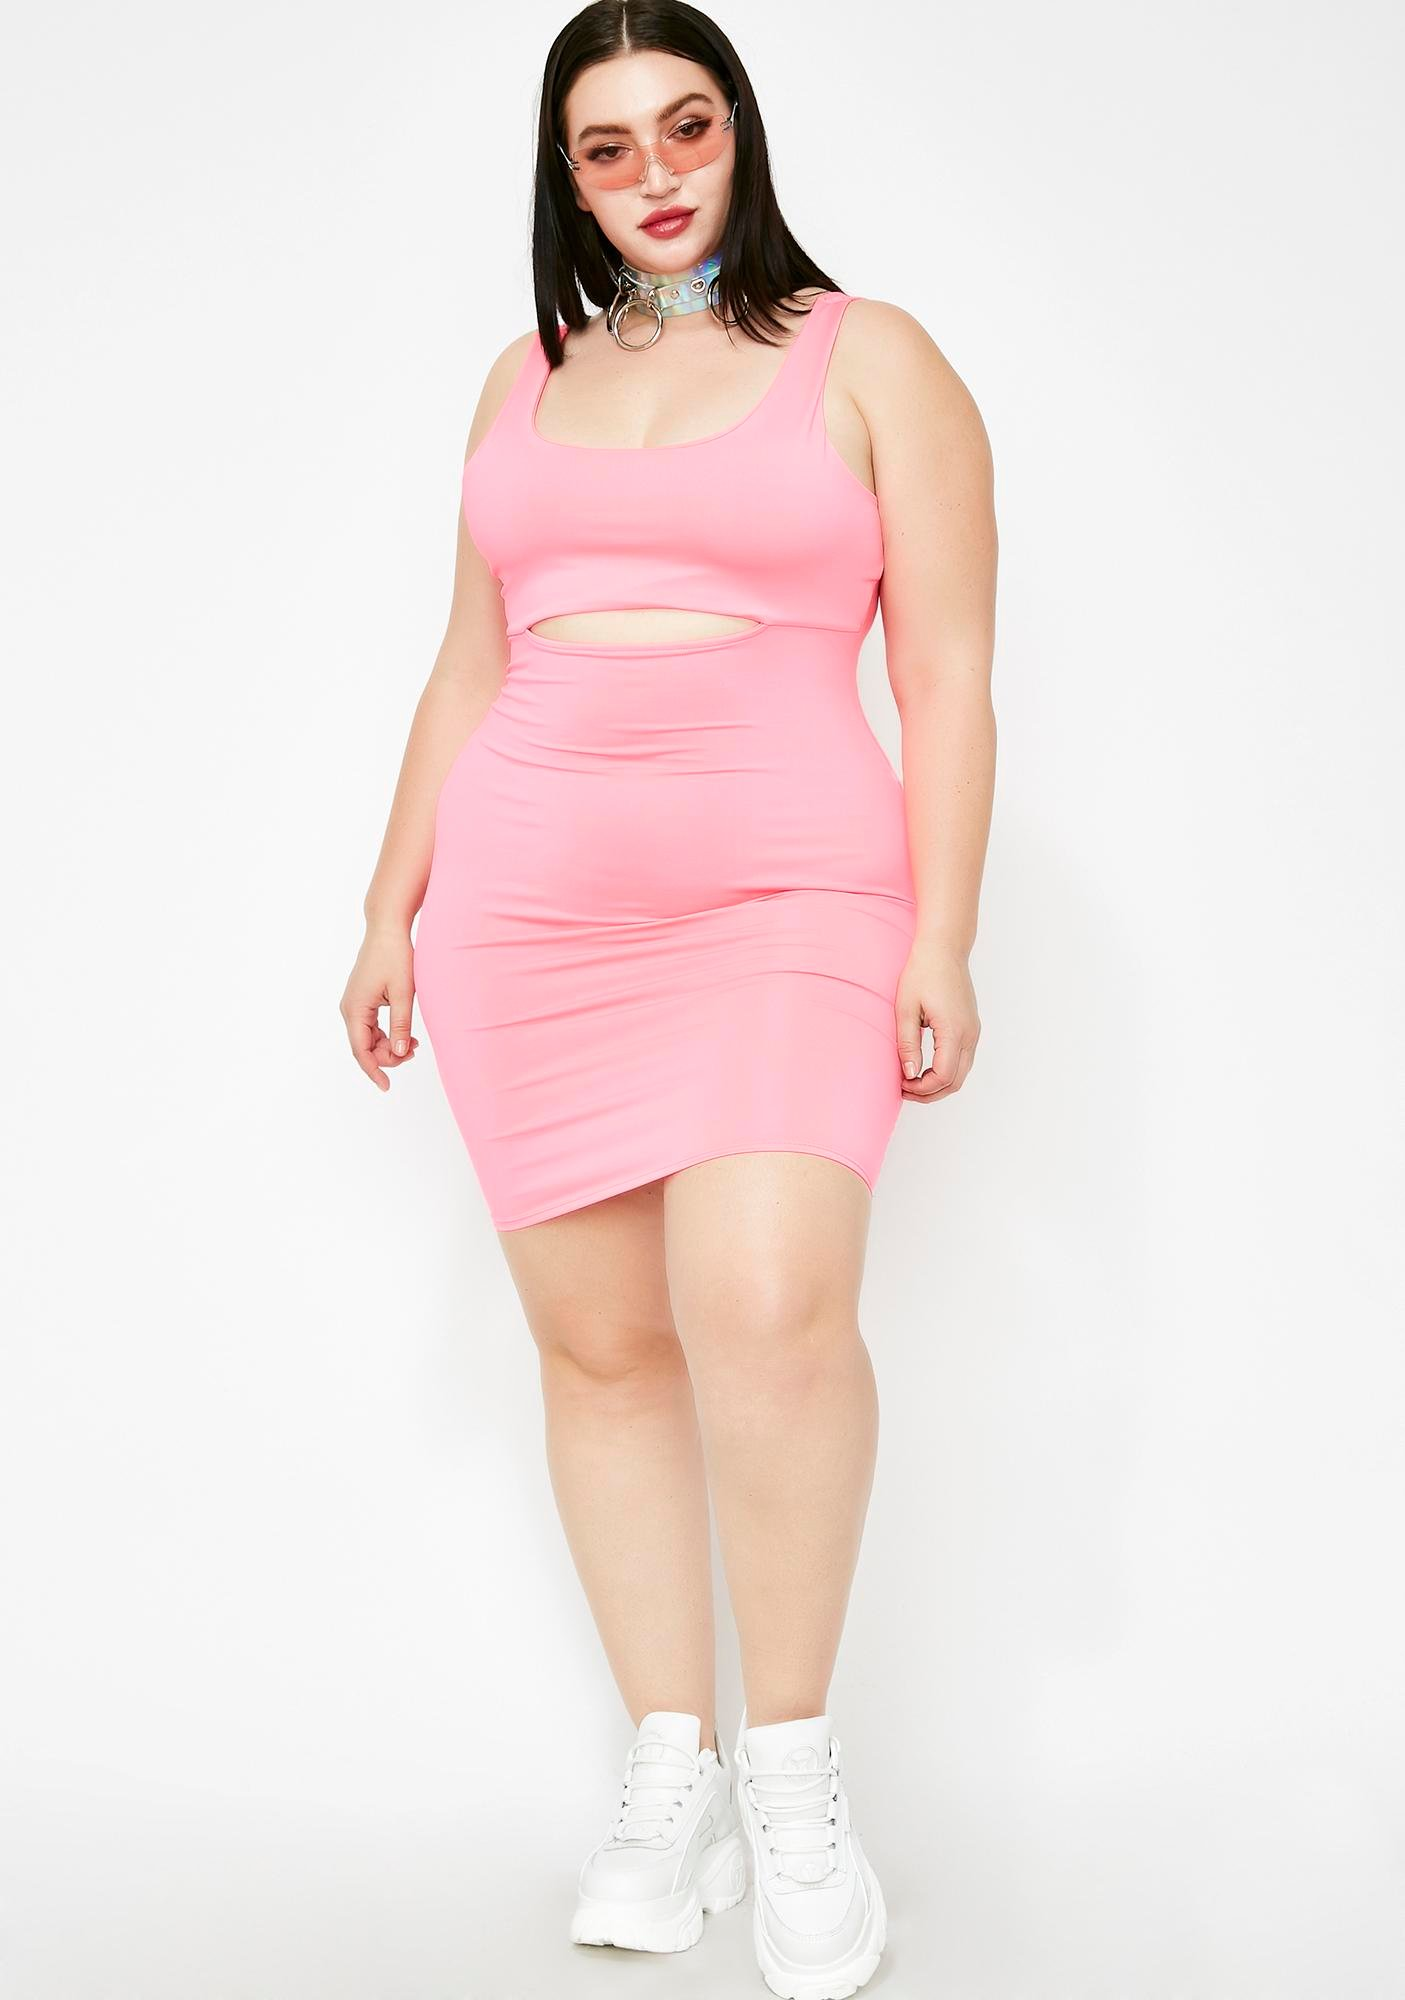 Miss Do A Double Take Bodycon Dress